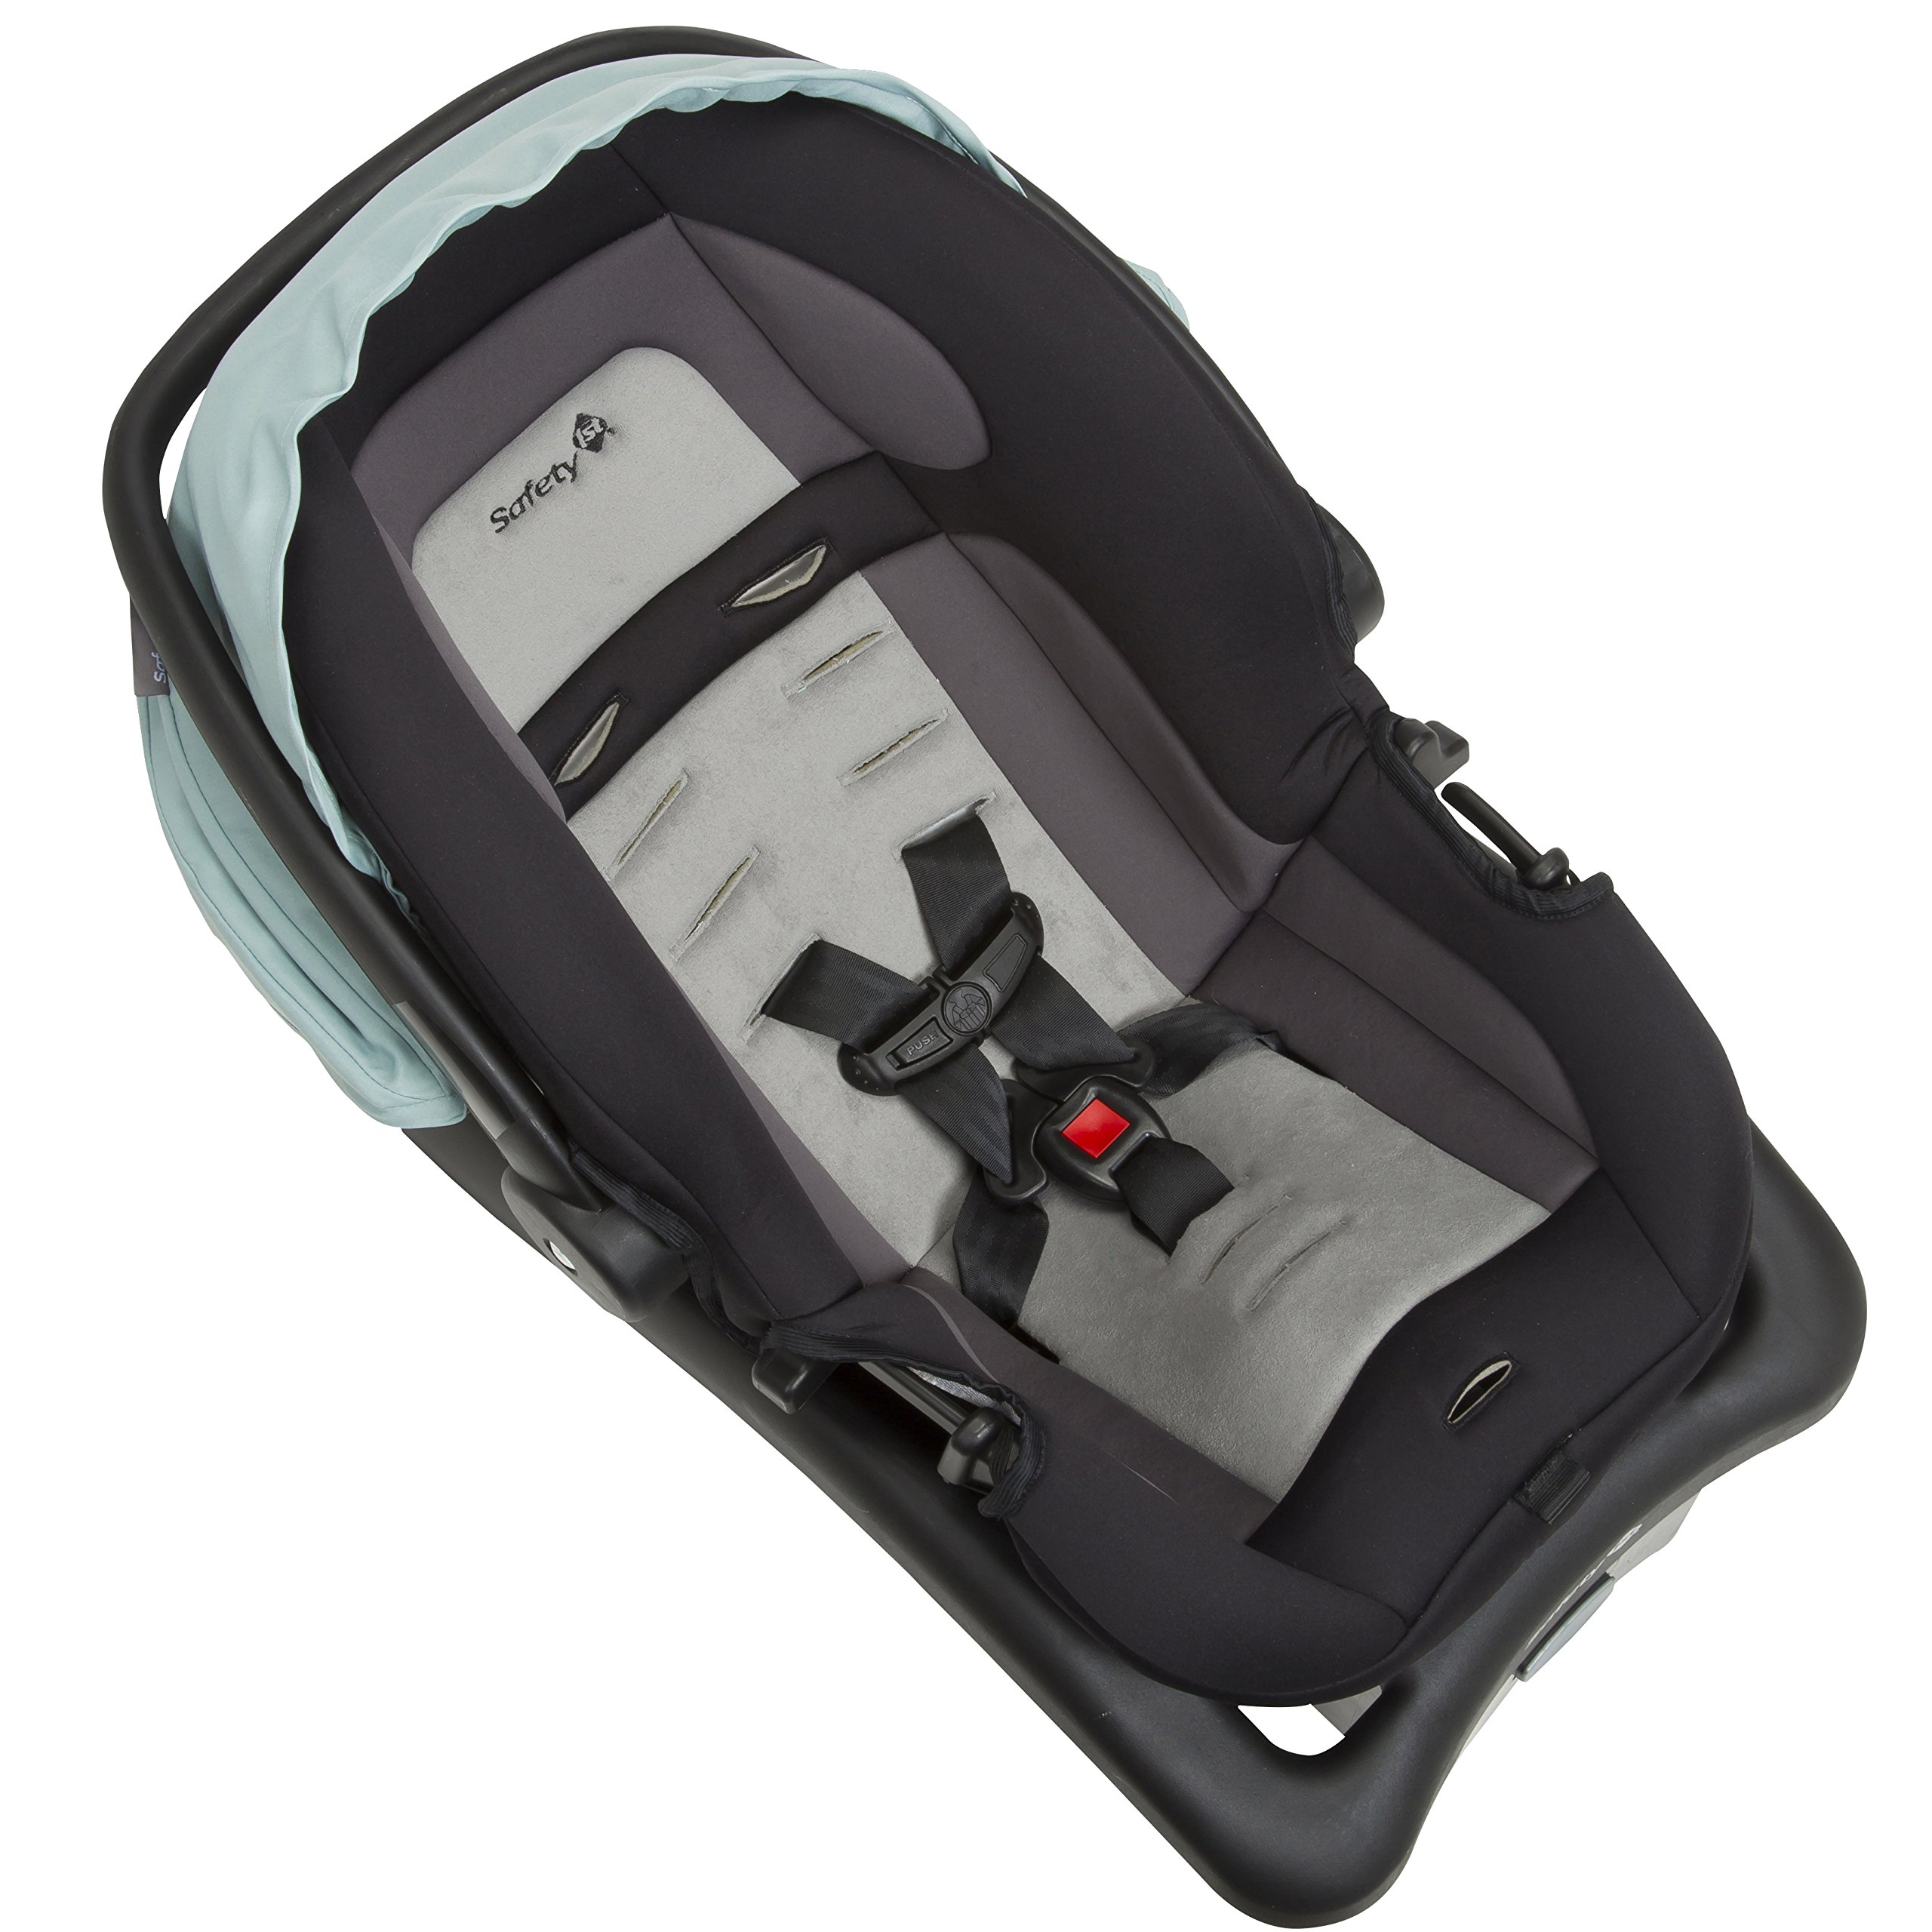 Safety 1st onBoard 35 LT Infant Car Seat, Juniper Pop by Safety 1st (Image #9)